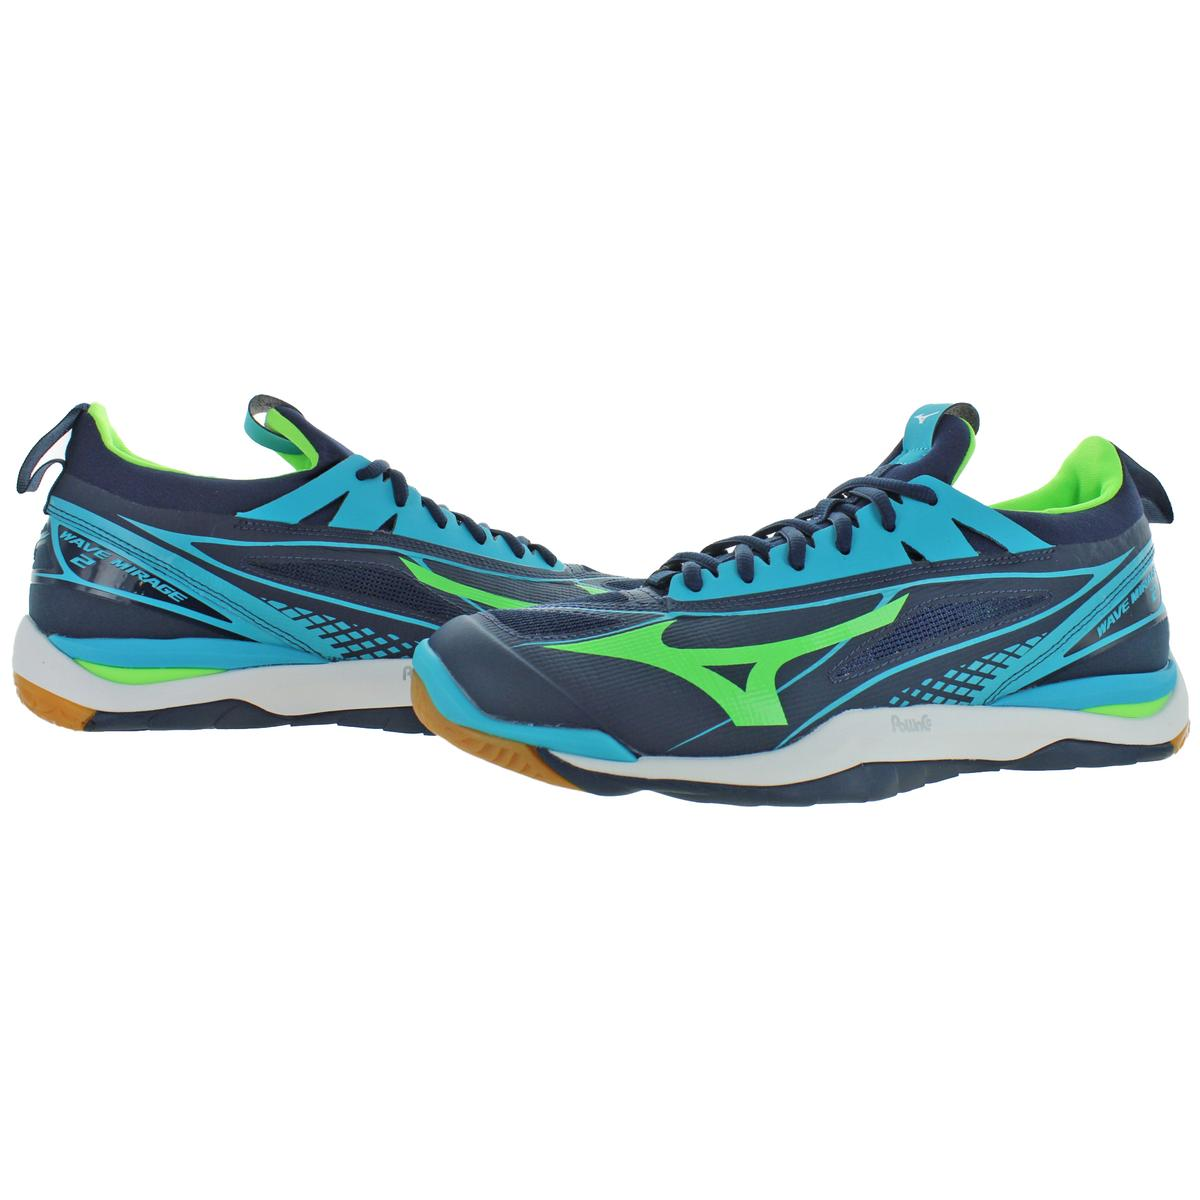 Mizuno-Mens-Wave-Mirage-2-Non-Marking-Handball-Lace-Up-Sneakers-Shoes-BHFO-9072 thumbnail 5